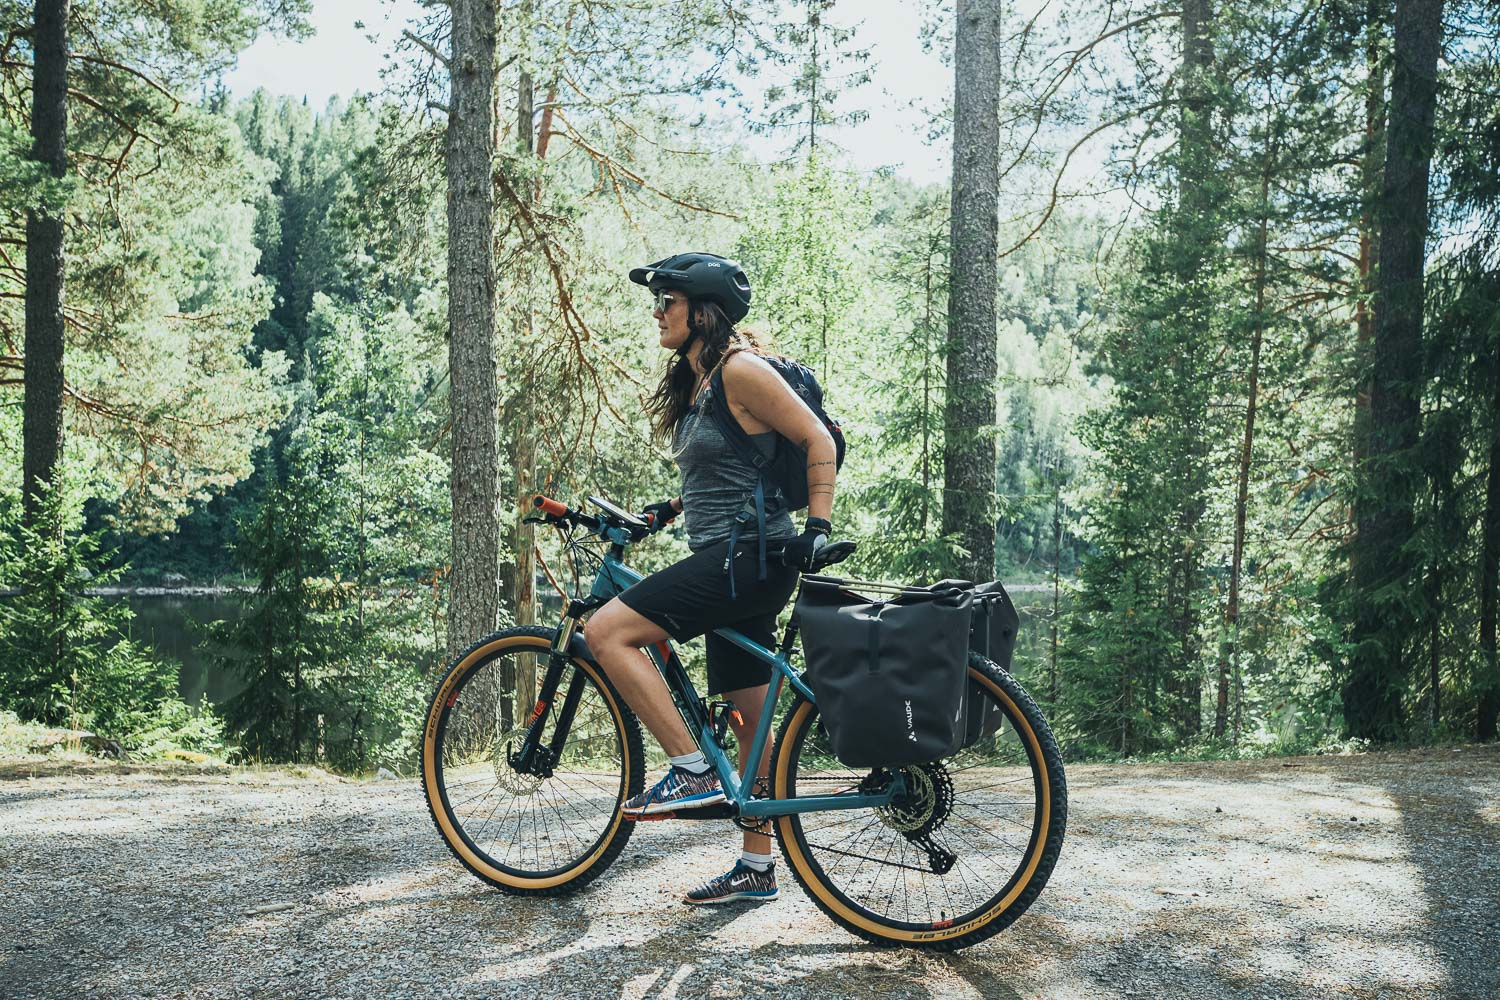 woman on a mountain bike in the forest